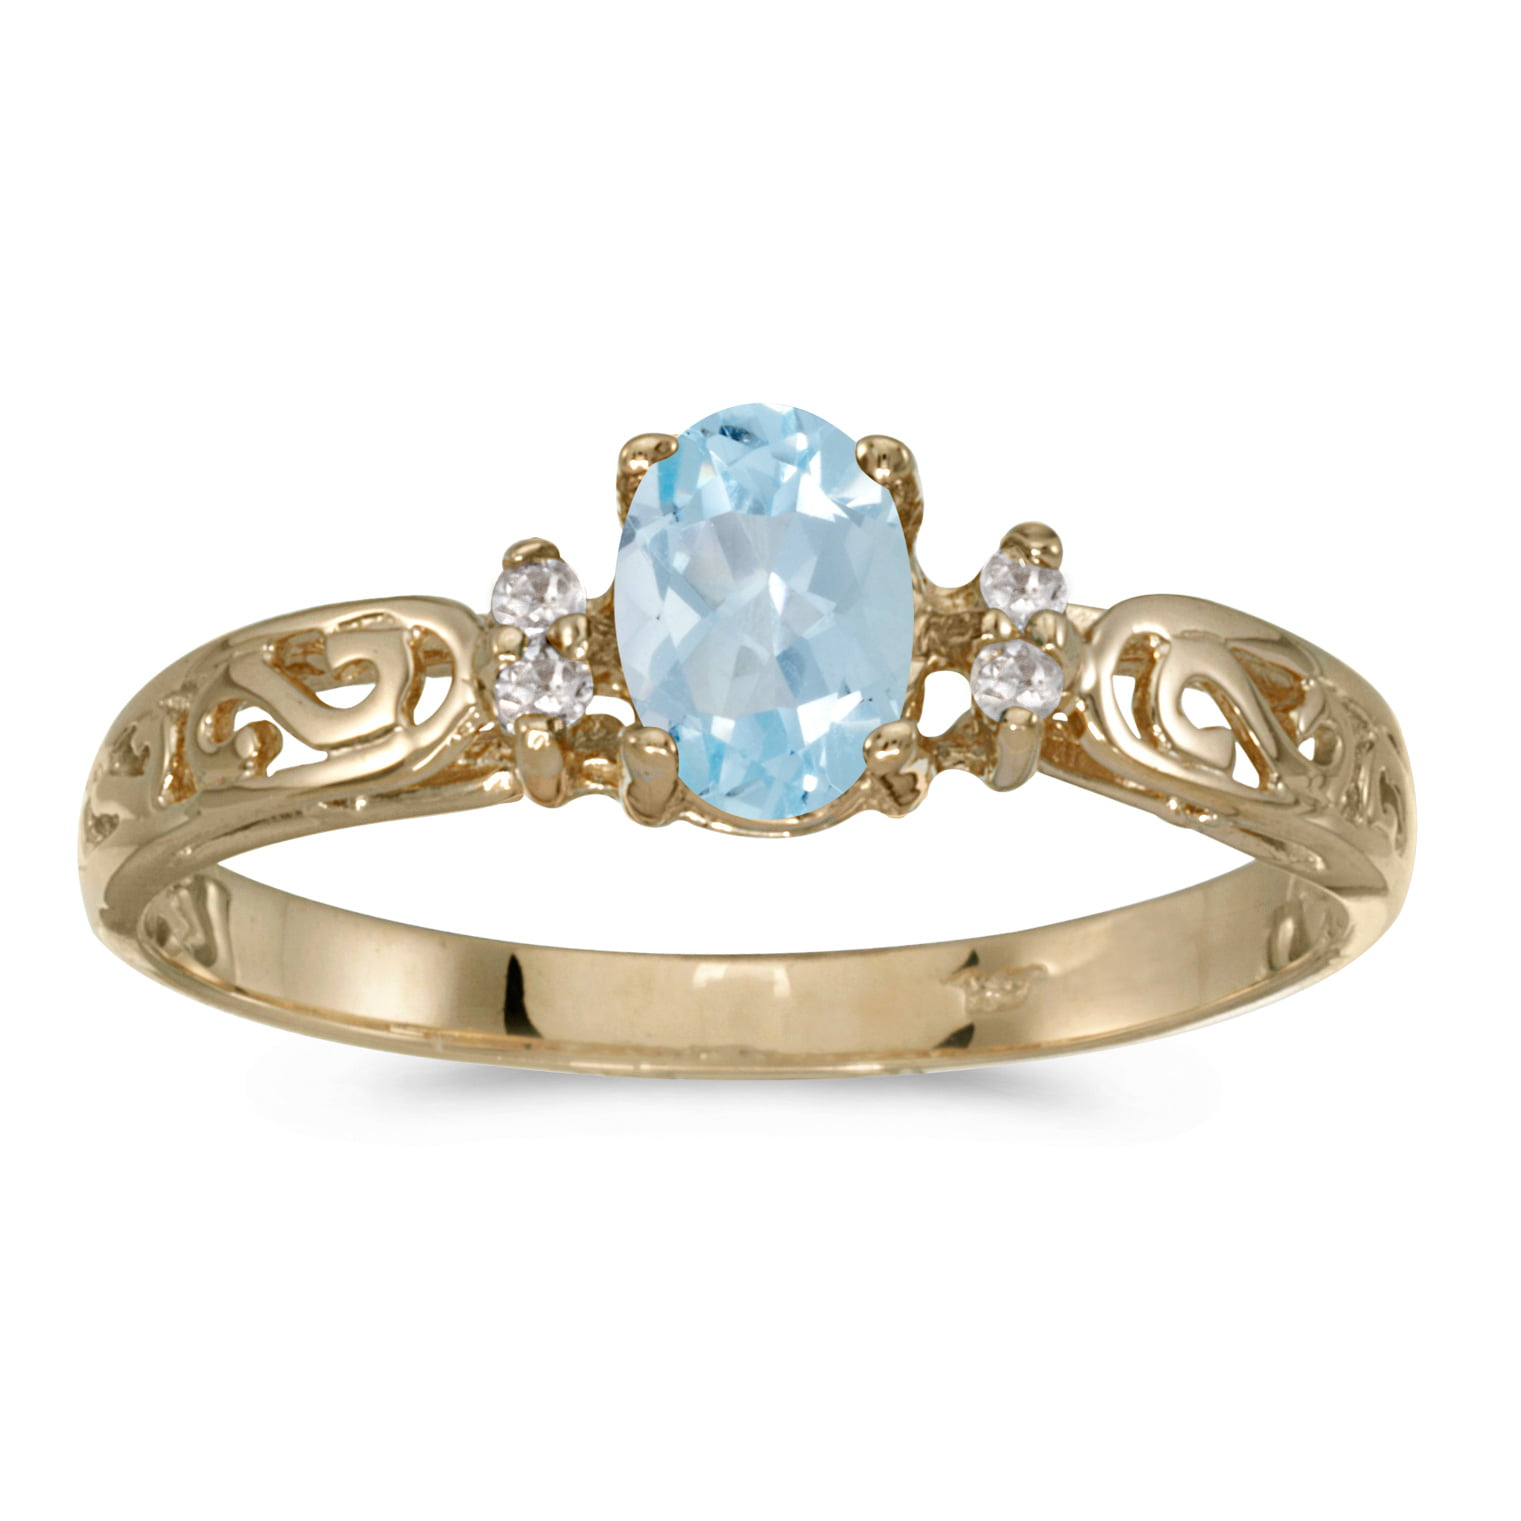 14k Yellow Gold Oval Aquamarine And Diamond Filagree Ring by